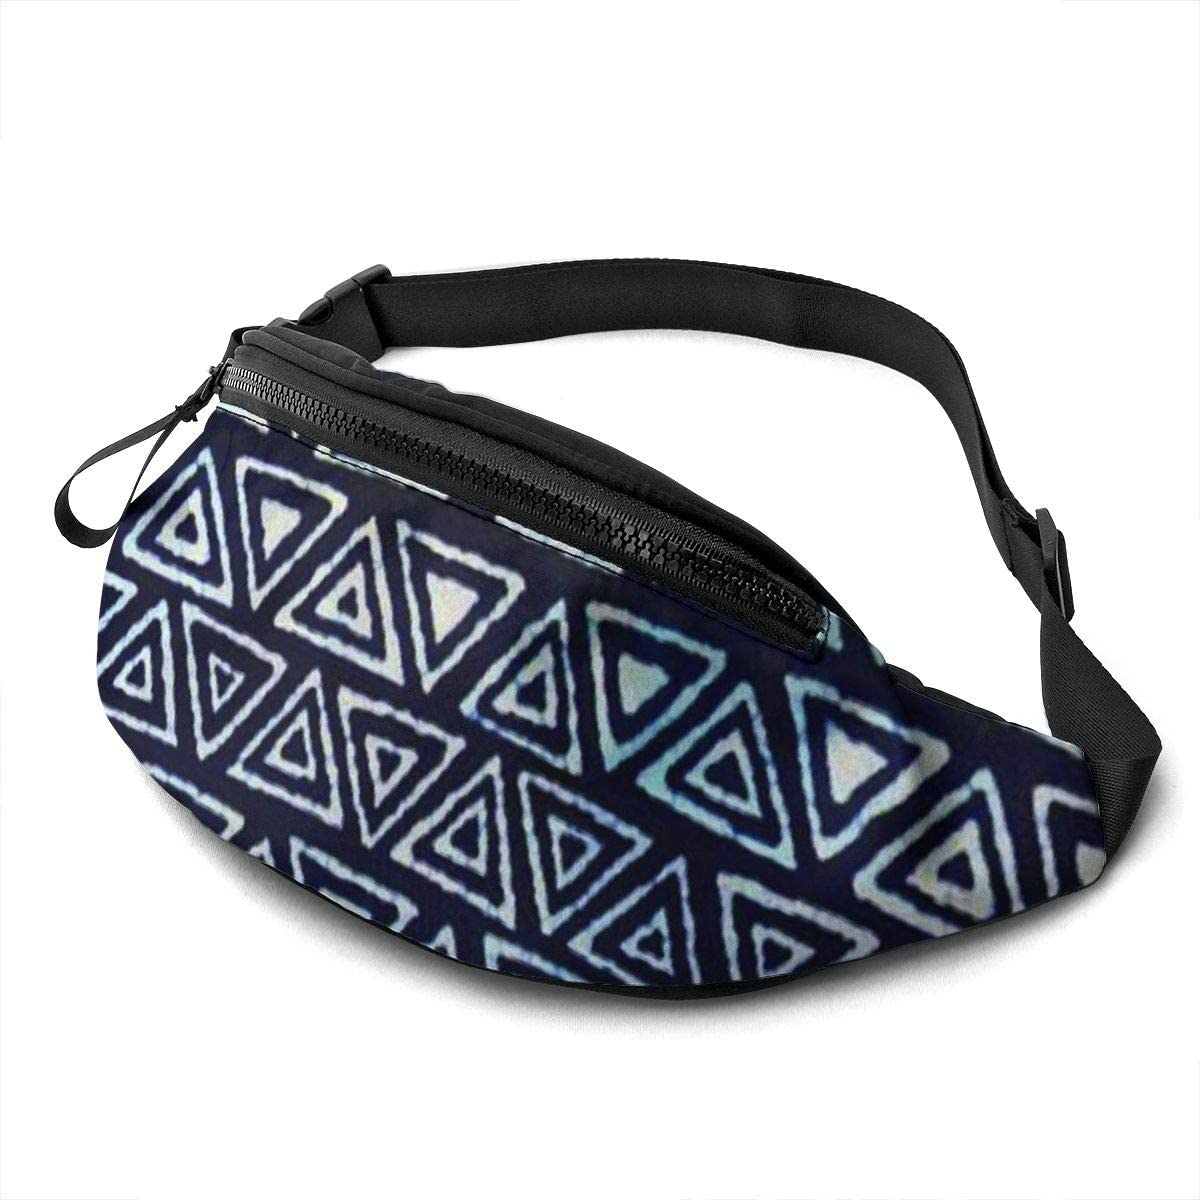 Blue And White Batik Fanny Pack For Men Women Waist Pack Bag With Headphone Jack And Zipper Pockets Adjustable Straps